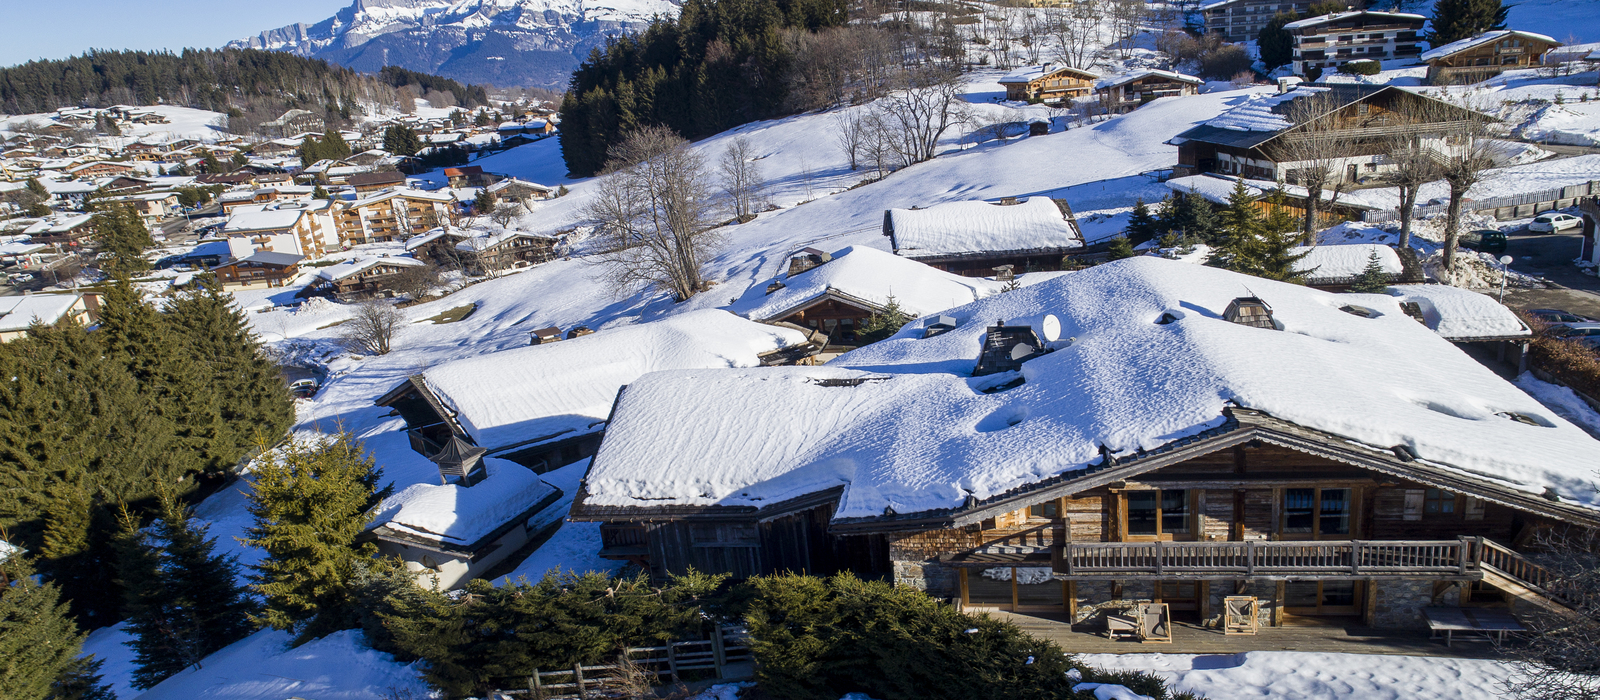 Zannier_Hotels_Le_Chalet_-_Exterior_2_-_Drone_I2N_for_Zannier_Hotels_1600x700